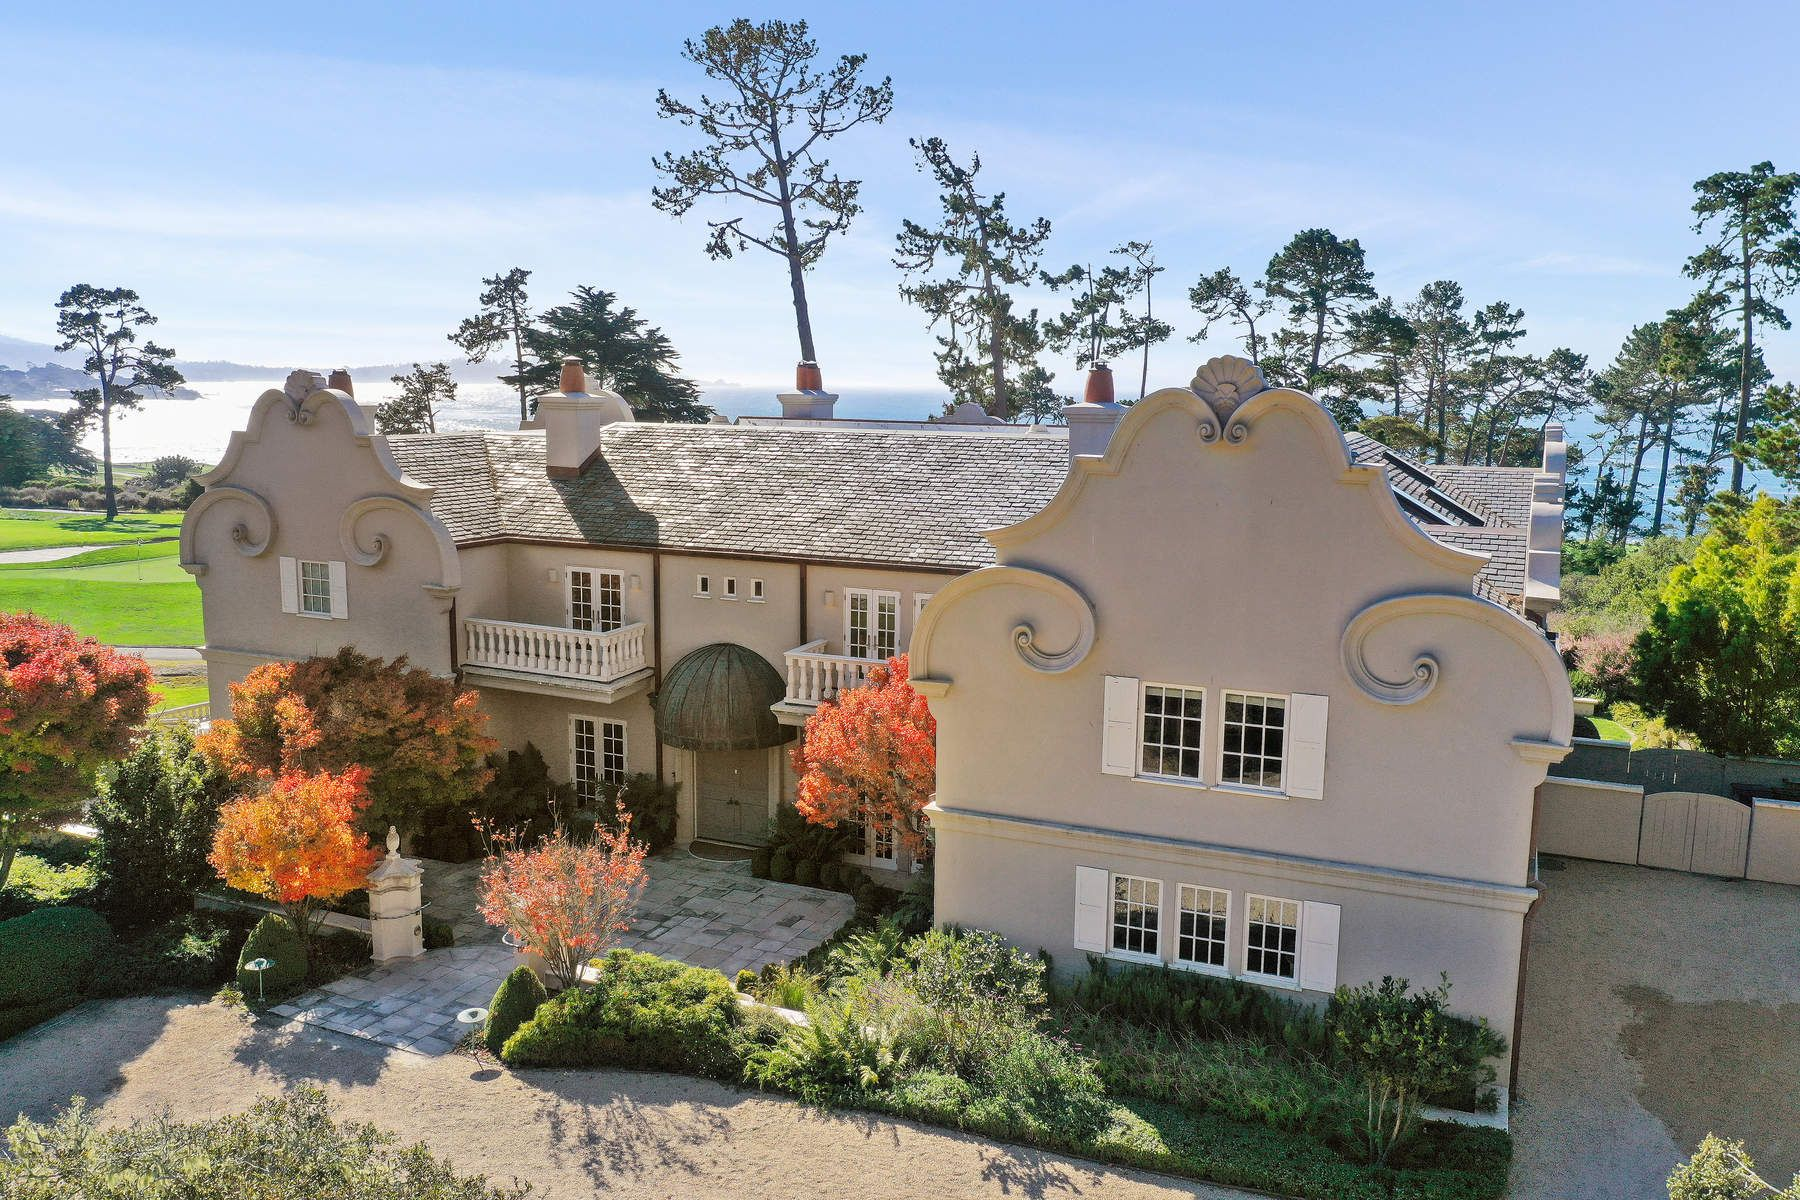 Single Family Homes のために 売買 アット Sophisticated Pebble Beach Estate 3410 17 Mile Drive, Pebble Beach, カリフォルニア 93953 アメリカ